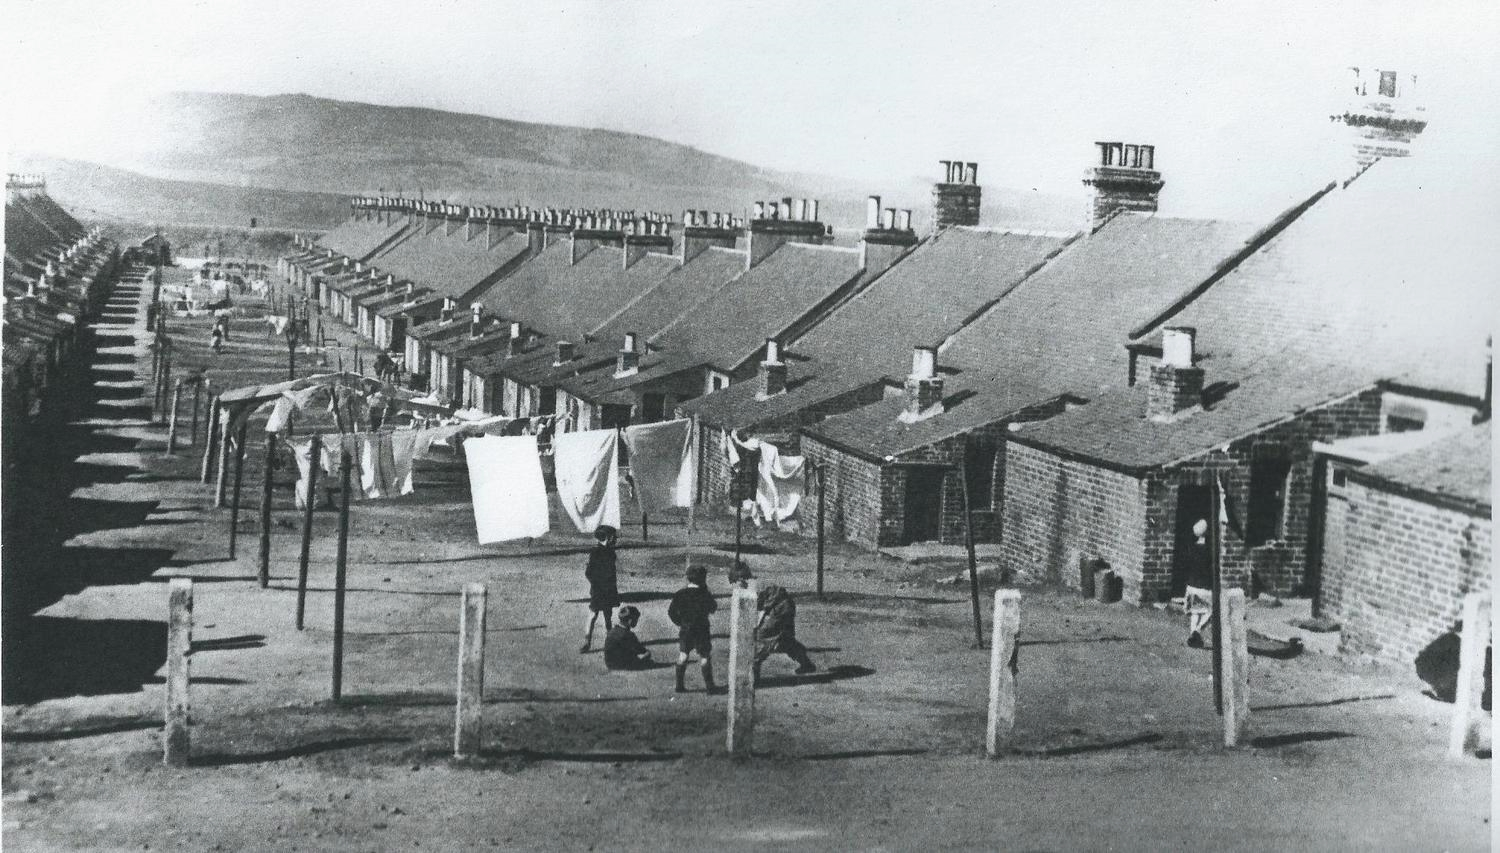 A typical Miners' Row, Fife, with washing on lines